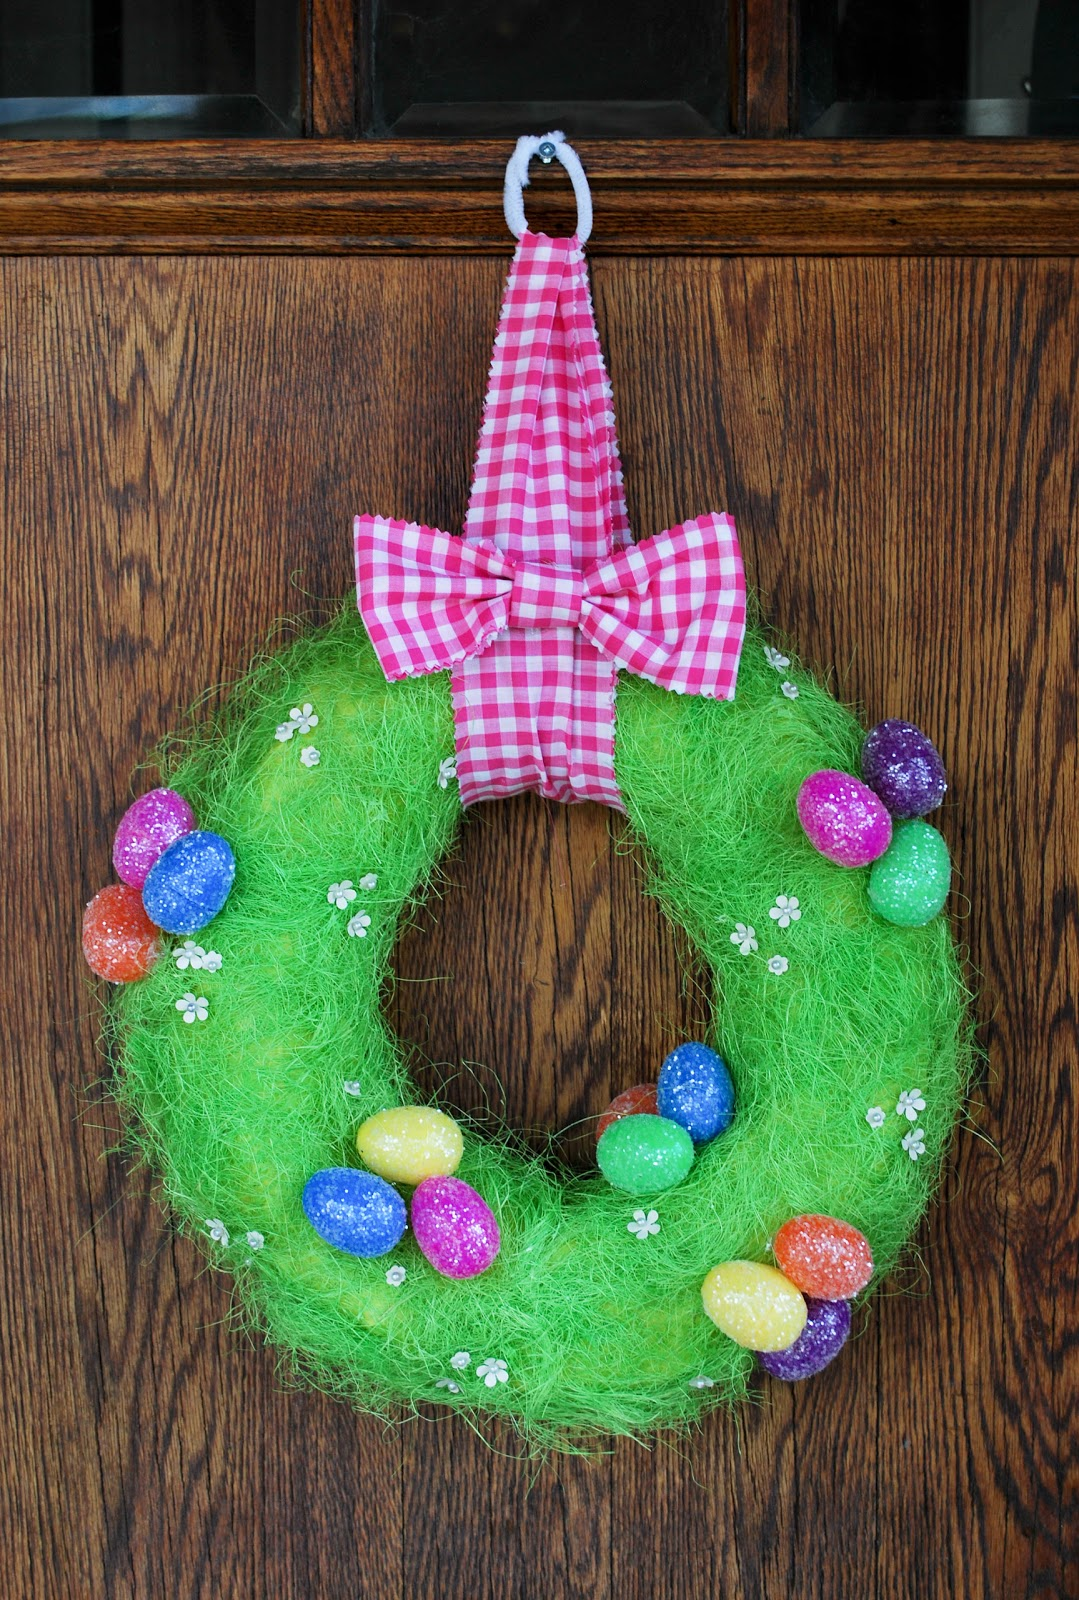 How To.... Do Something: How To Make An Easter Wreath